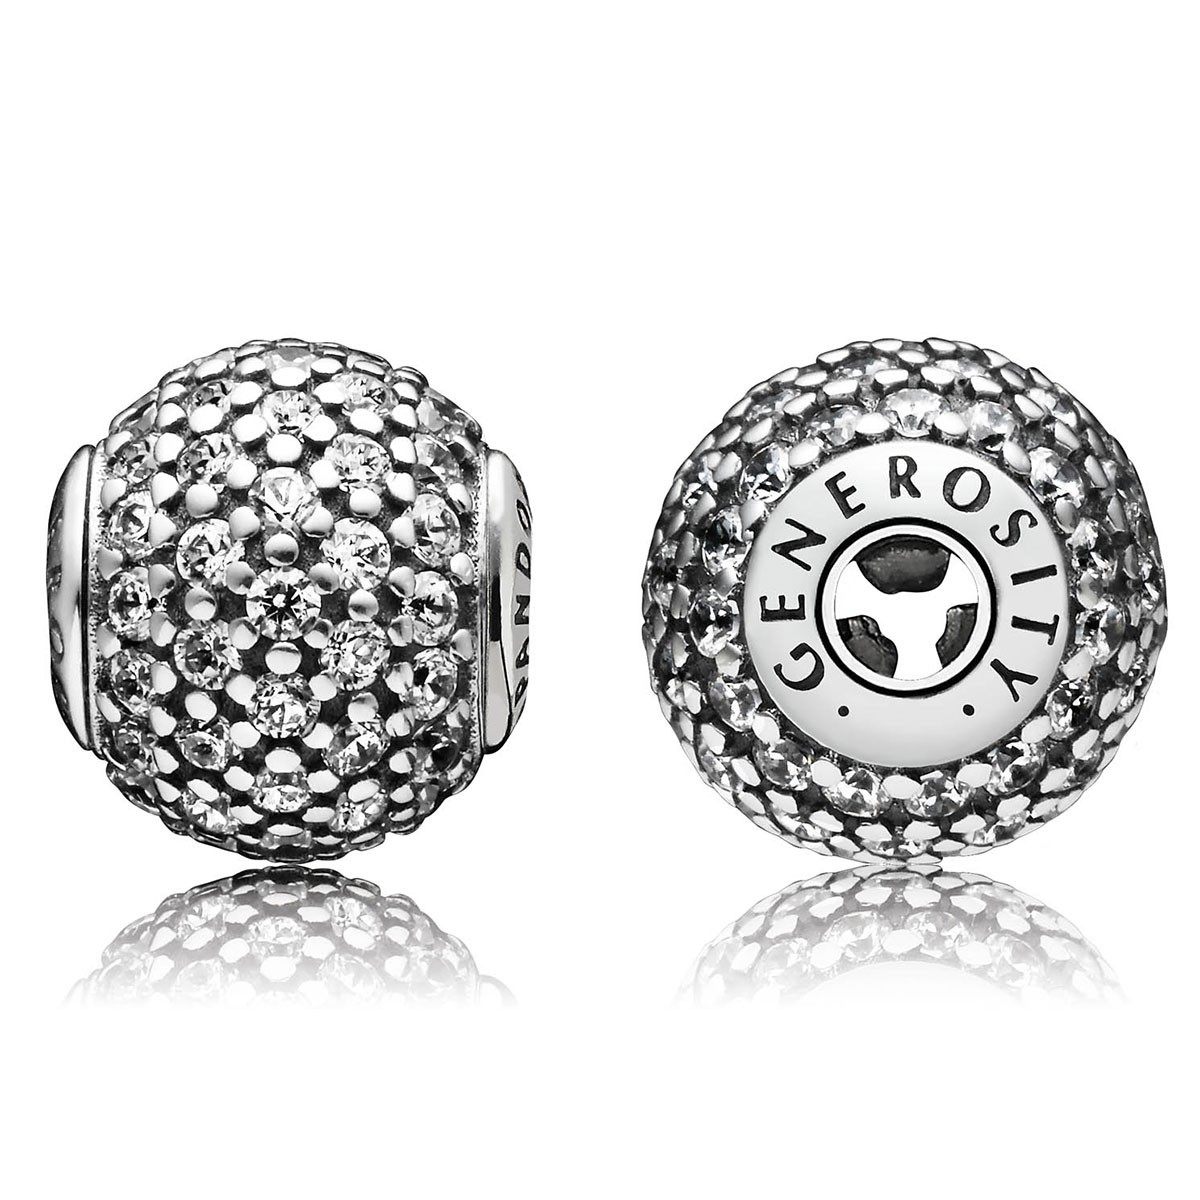 PANDORA ESSENCE Collection GENEROSITY Charm (only fit for ESSENCE bracelet)